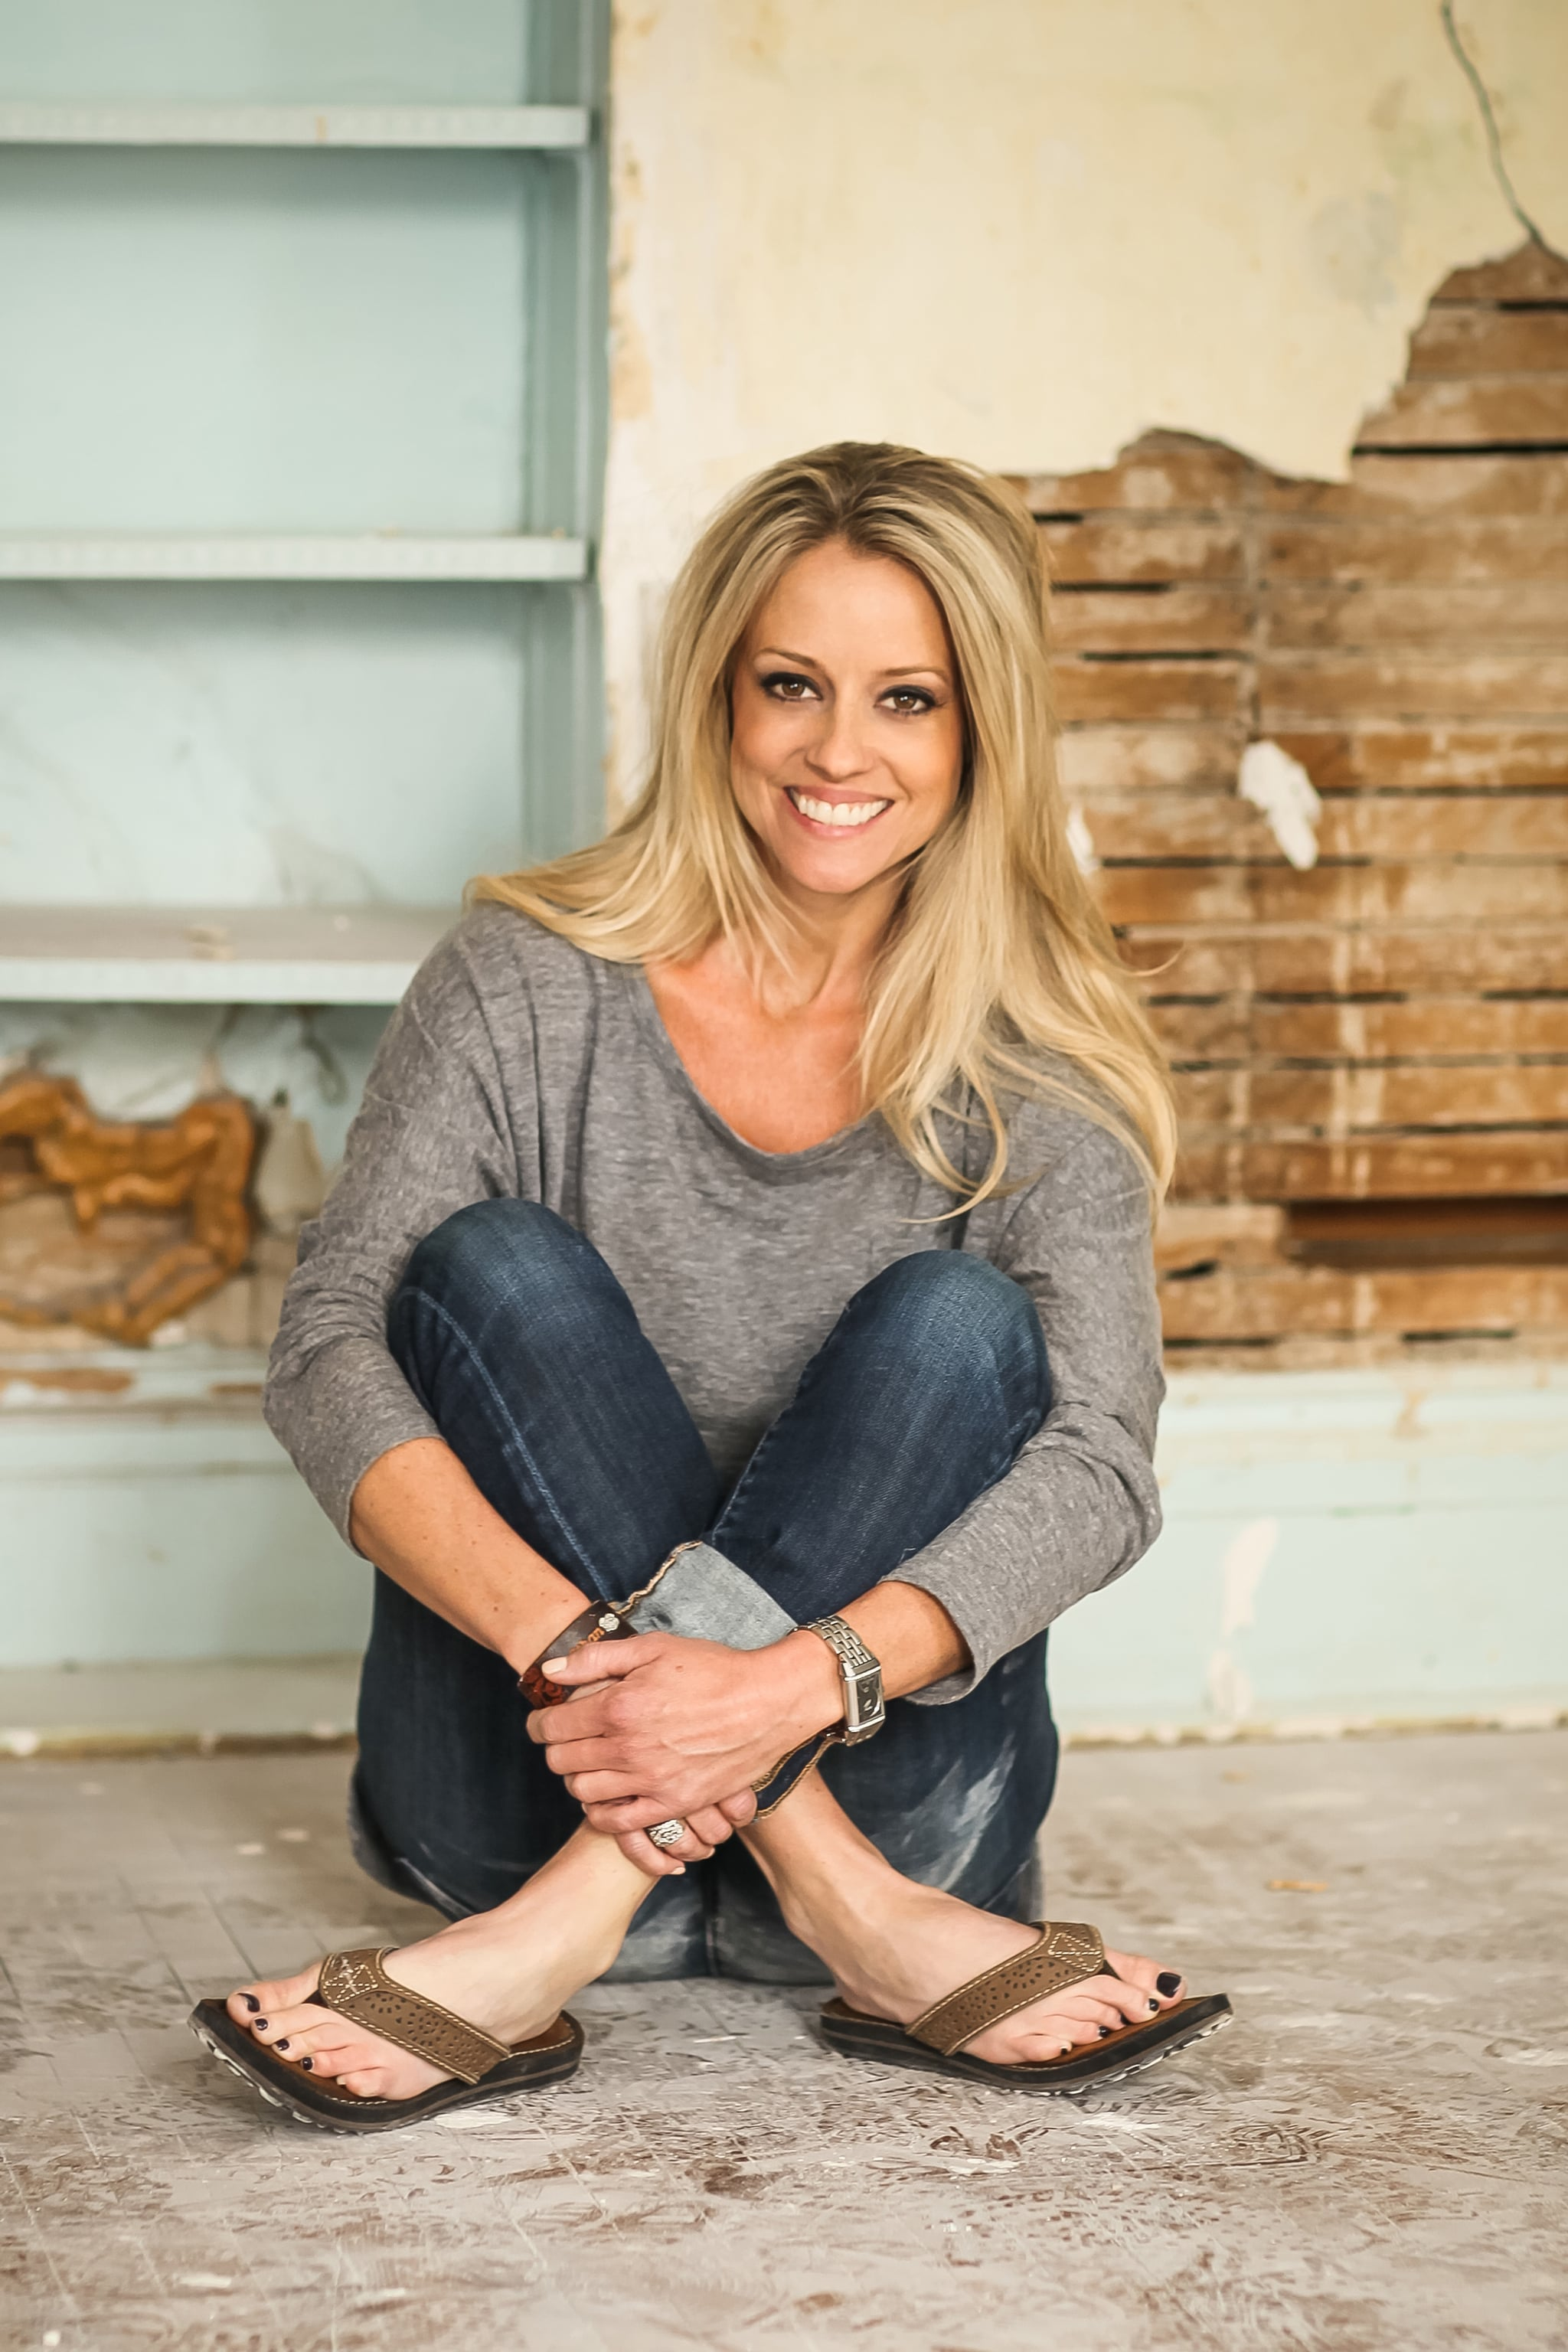 The 42-year old daughter of father Rod Curtis and mother Joanie Curtis Nicole Curtis in 2018 photo. Nicole Curtis earned a  million dollar salary - leaving the net worth at 5 million in 2018